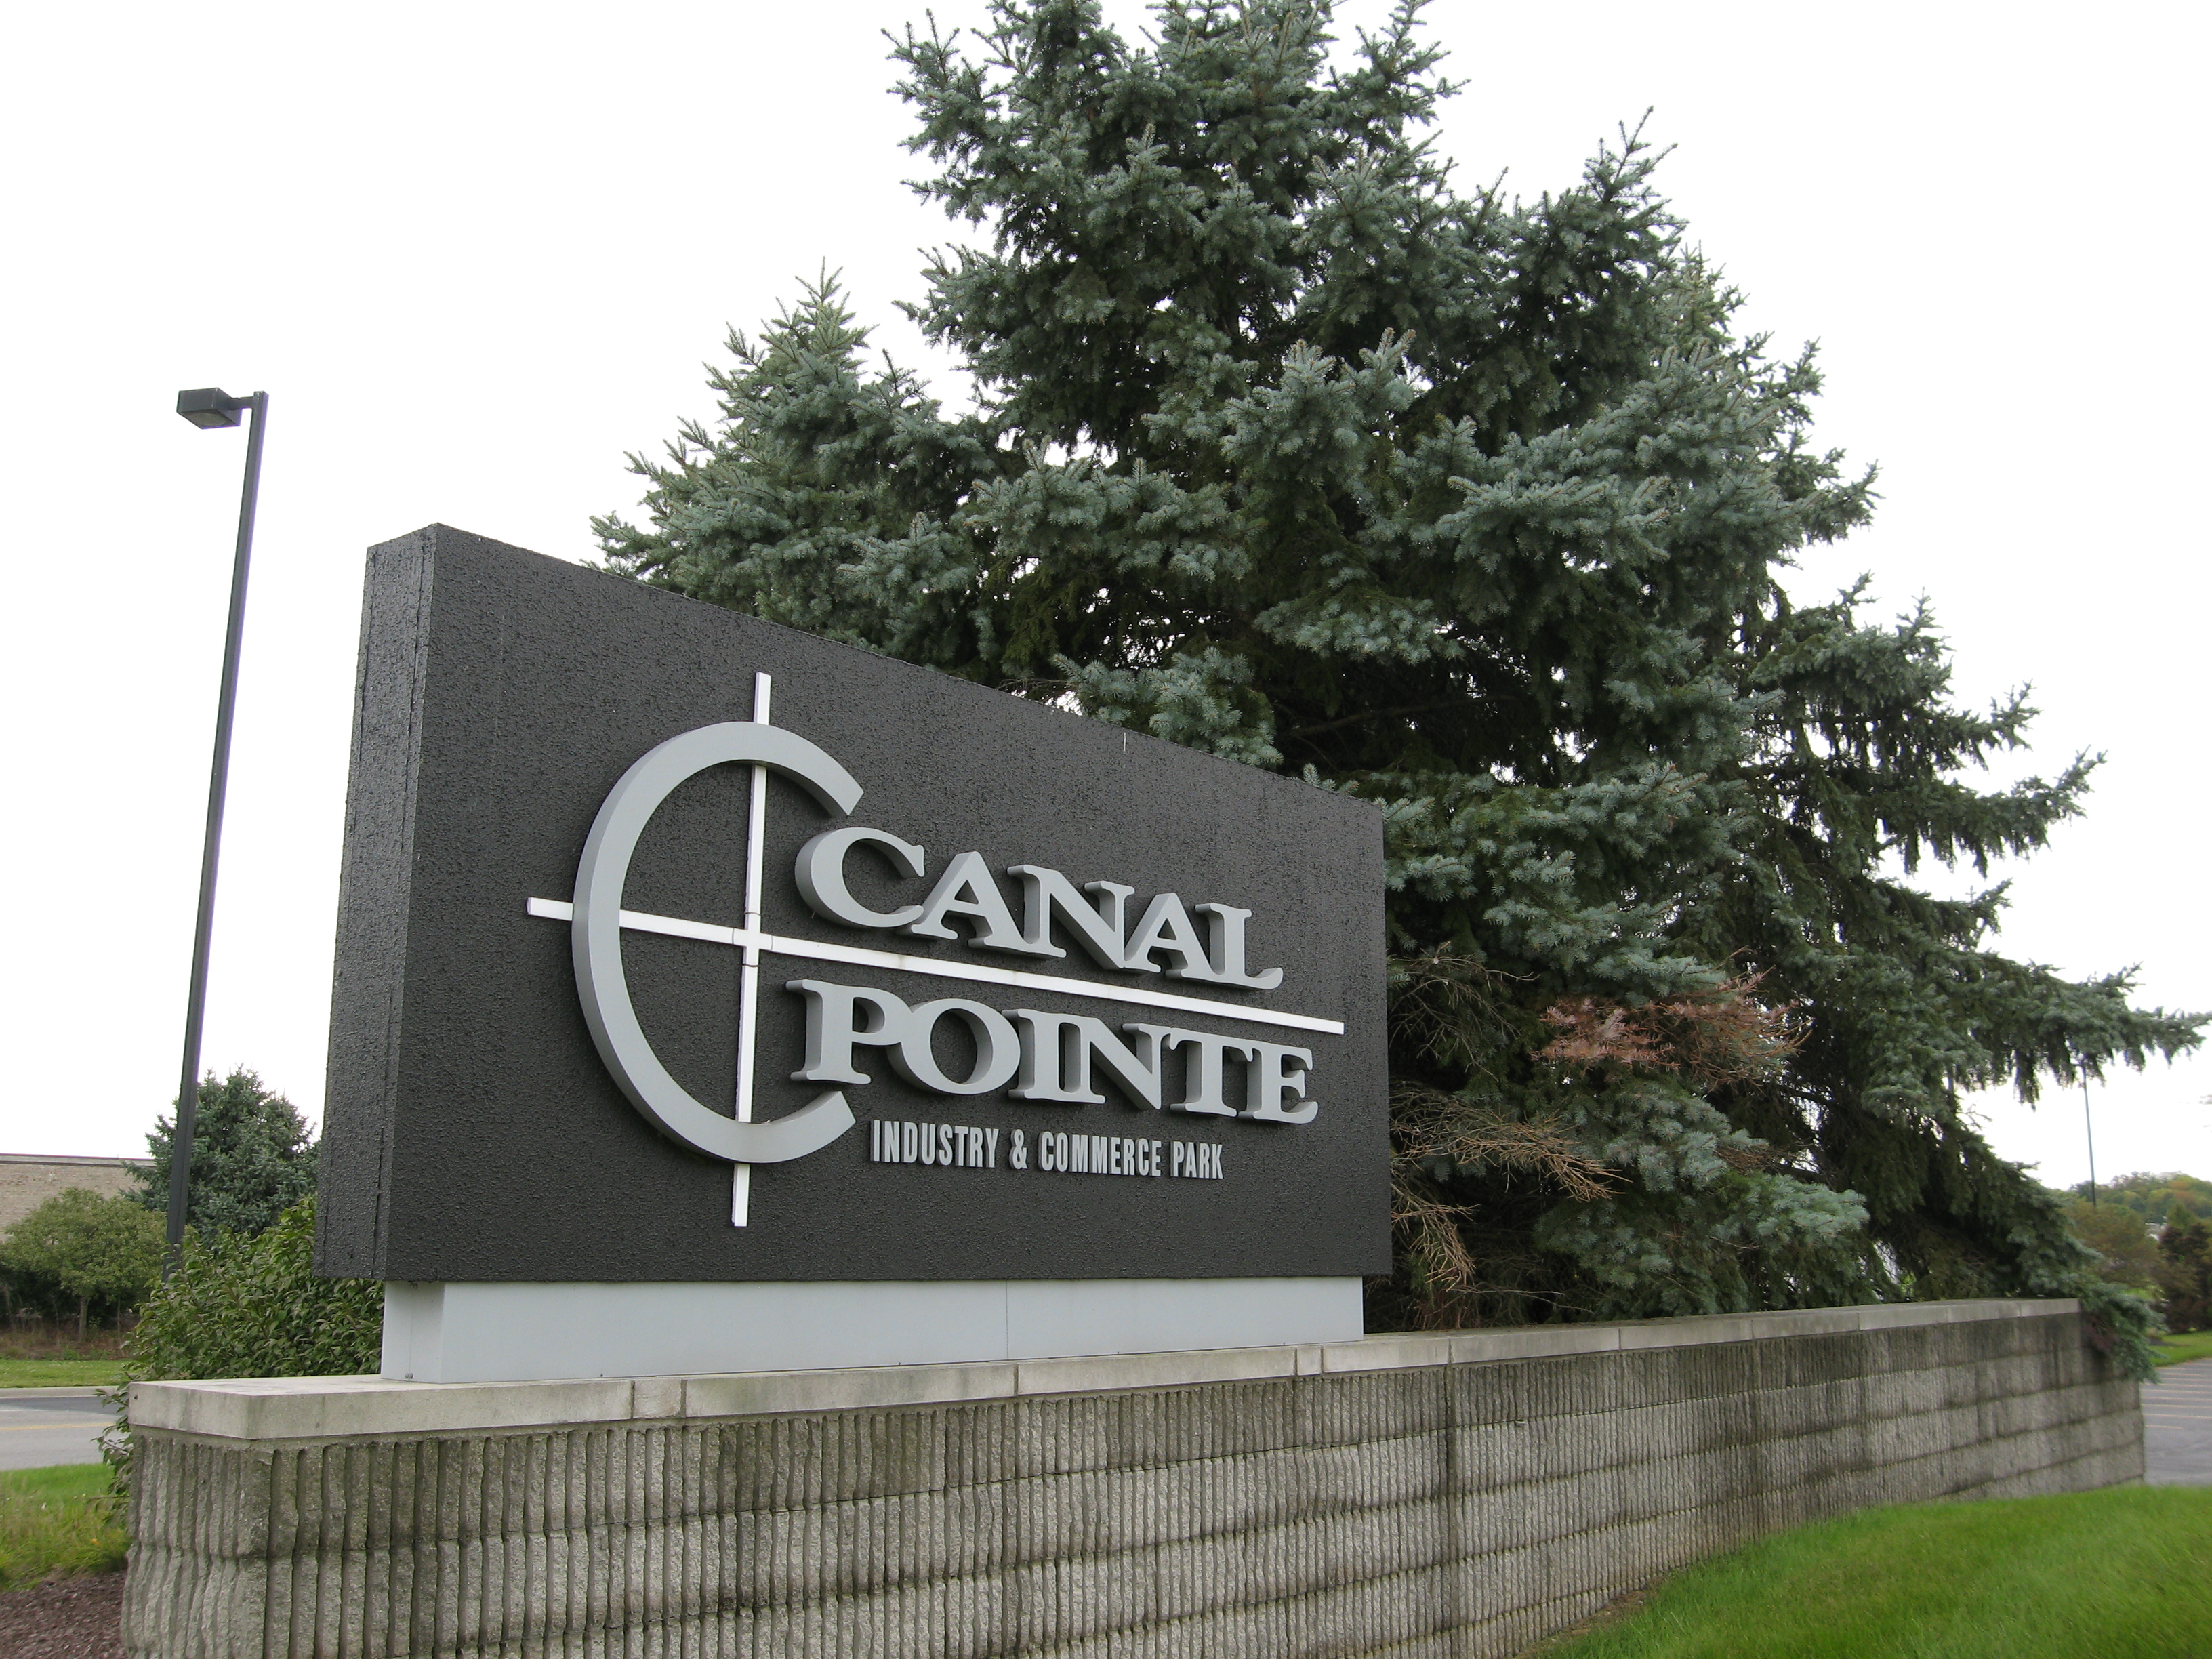 Canal Pointe Sign Picture